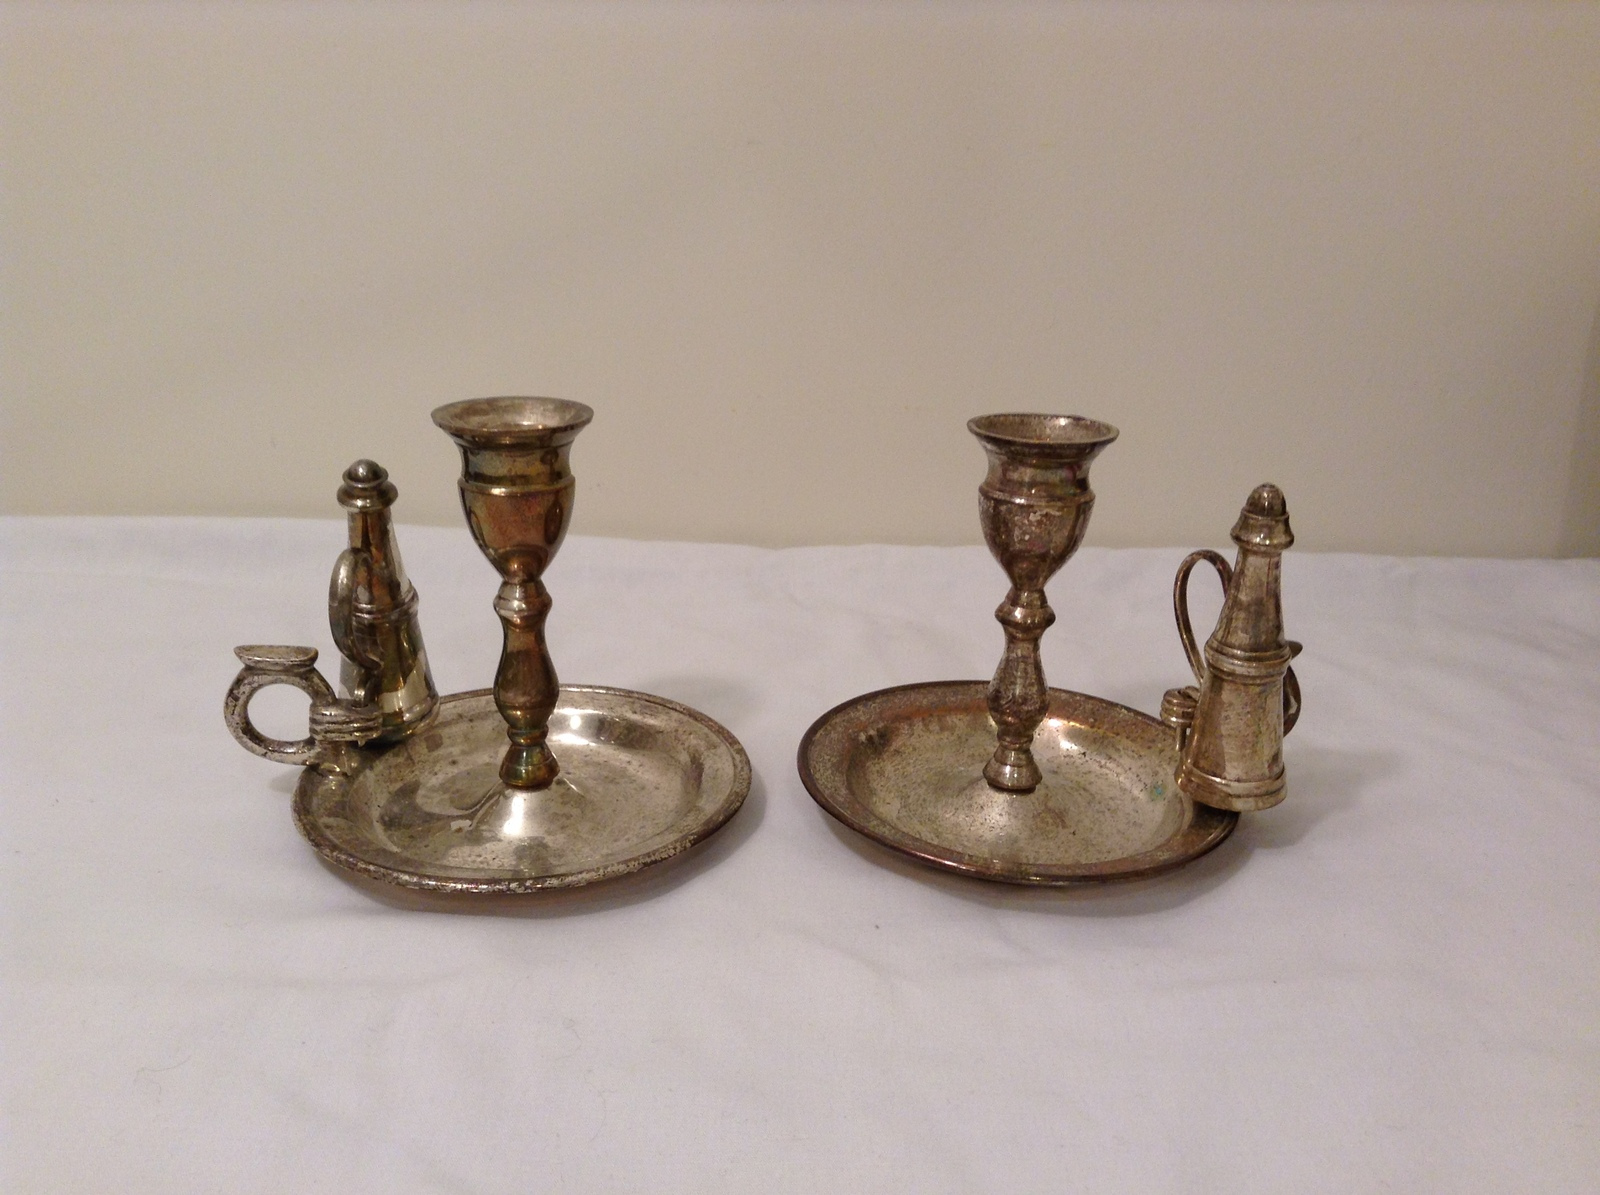 Metal Silver Plated Candle Holders with Snuffers Set of 2 Natural Patina